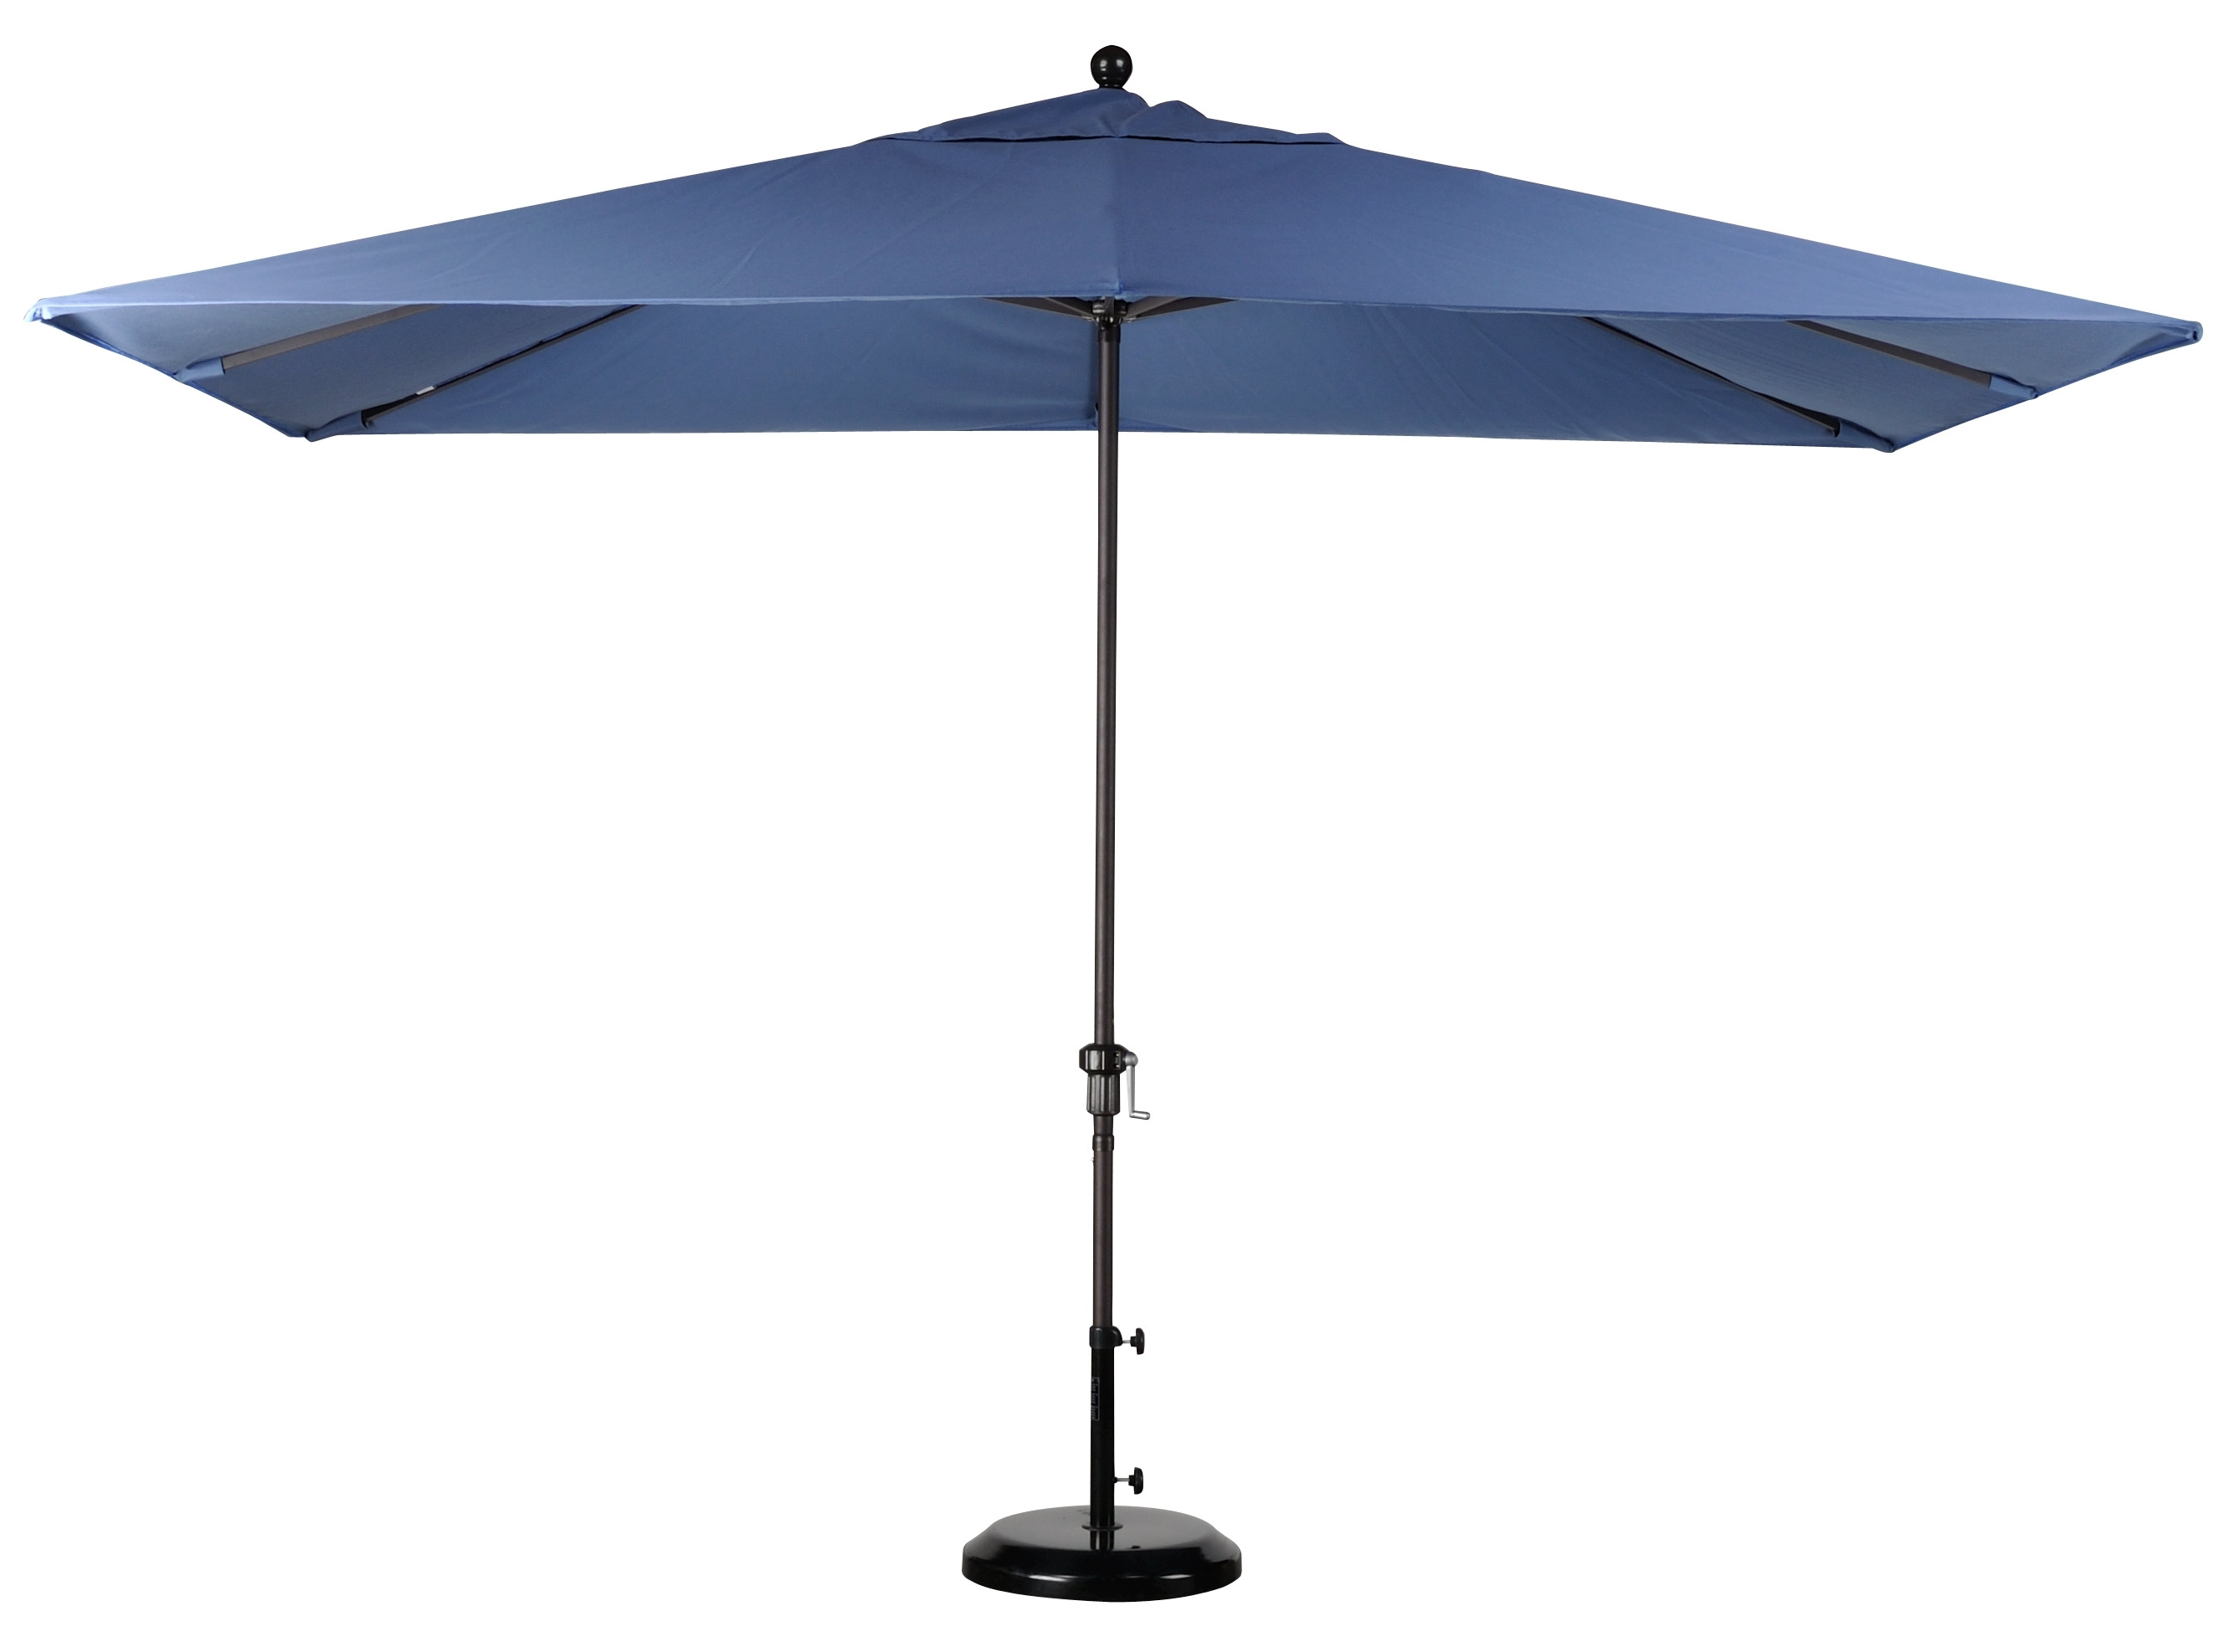 Best Selection Rectangular Market Umbrellas – Featuring Sunbrella Throughout Well Known Commercial Patio Umbrellas Sunbrella (View 1 of 20)